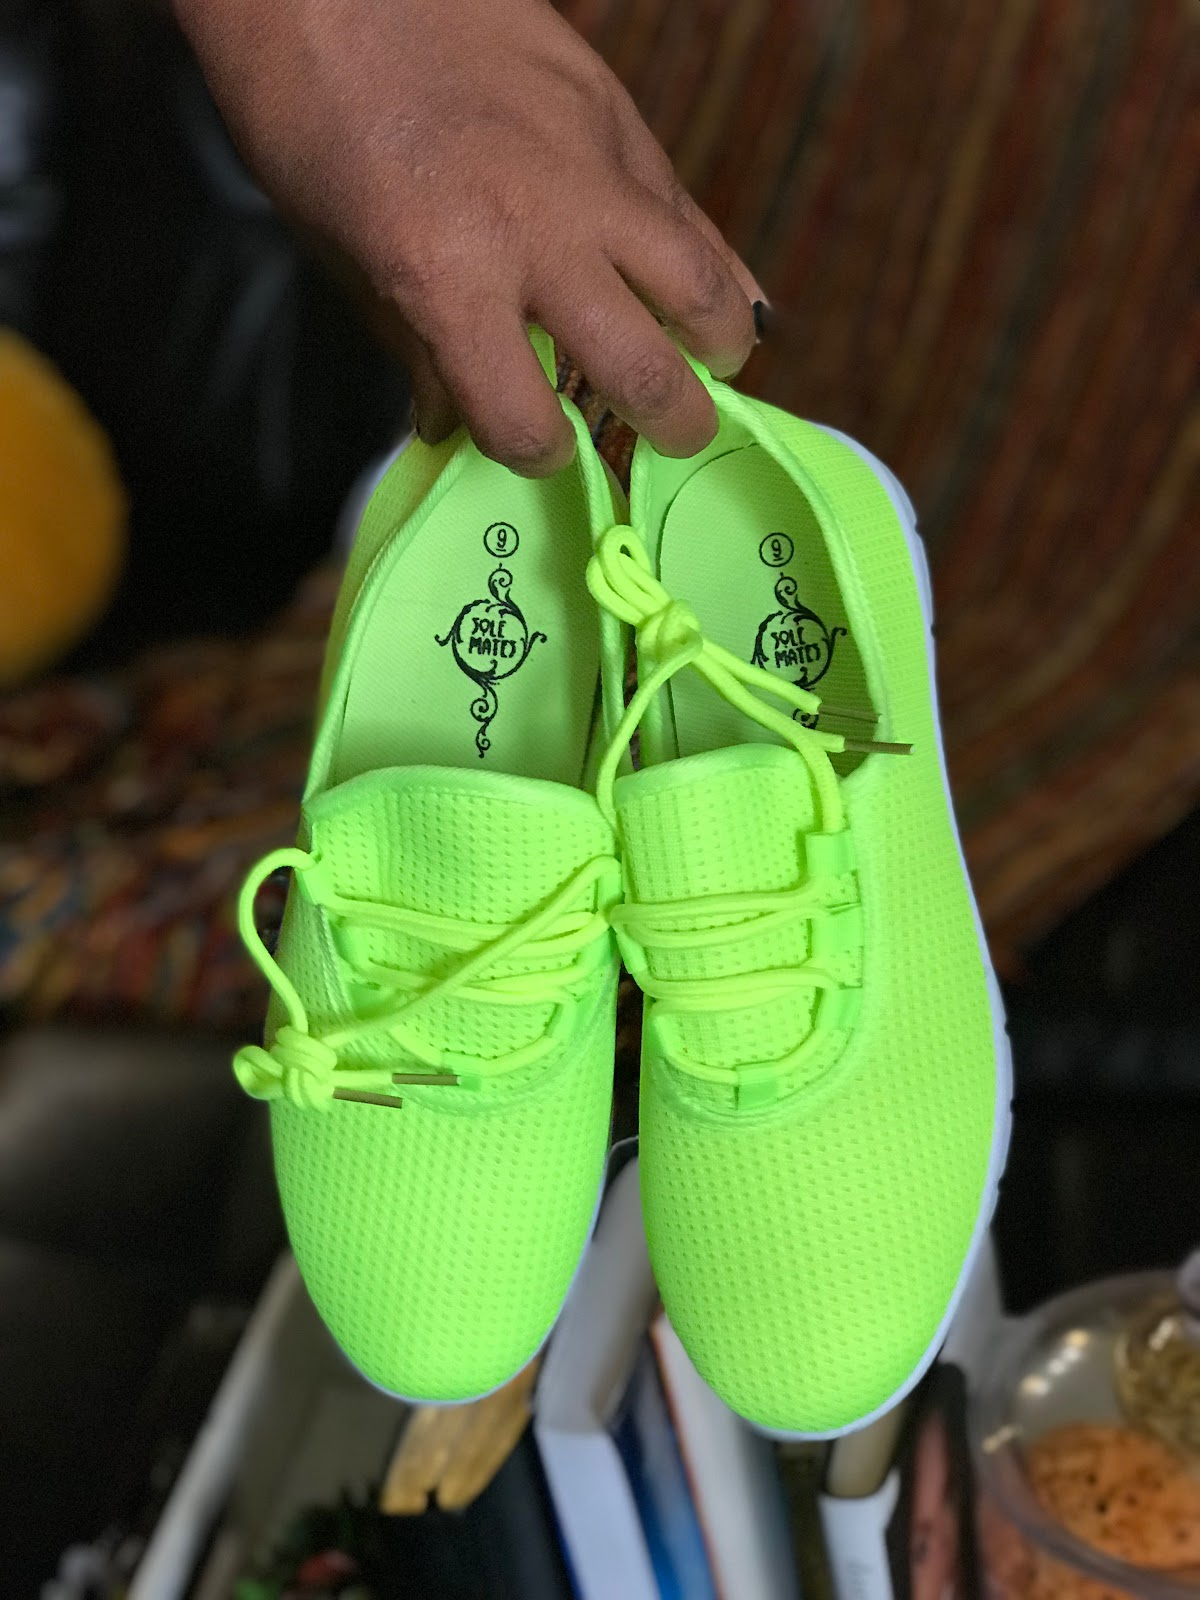 Image: Neon shoes Tangie Bell bought at a sale